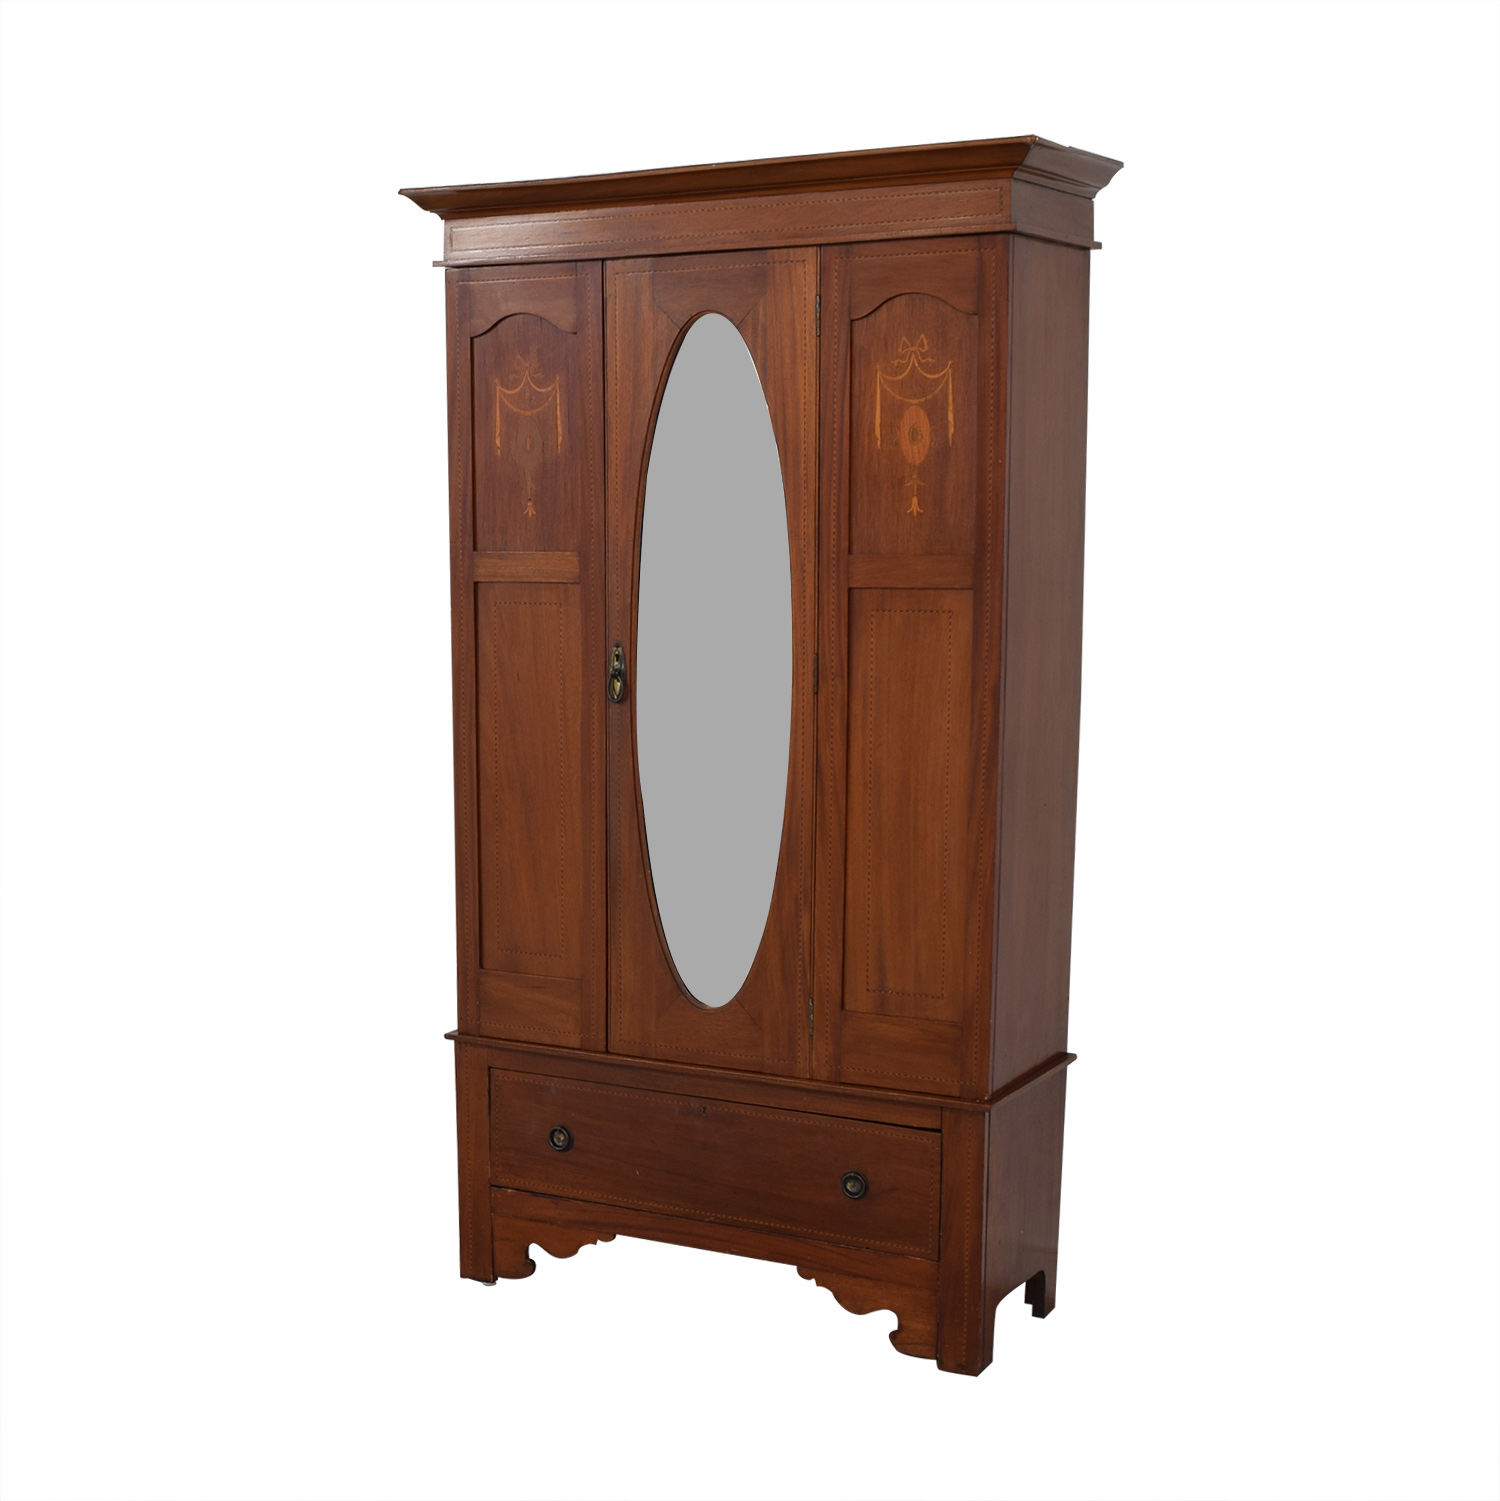 ABC Carpet & Home ABC Carpet & Home Armoire with Mirror coupon